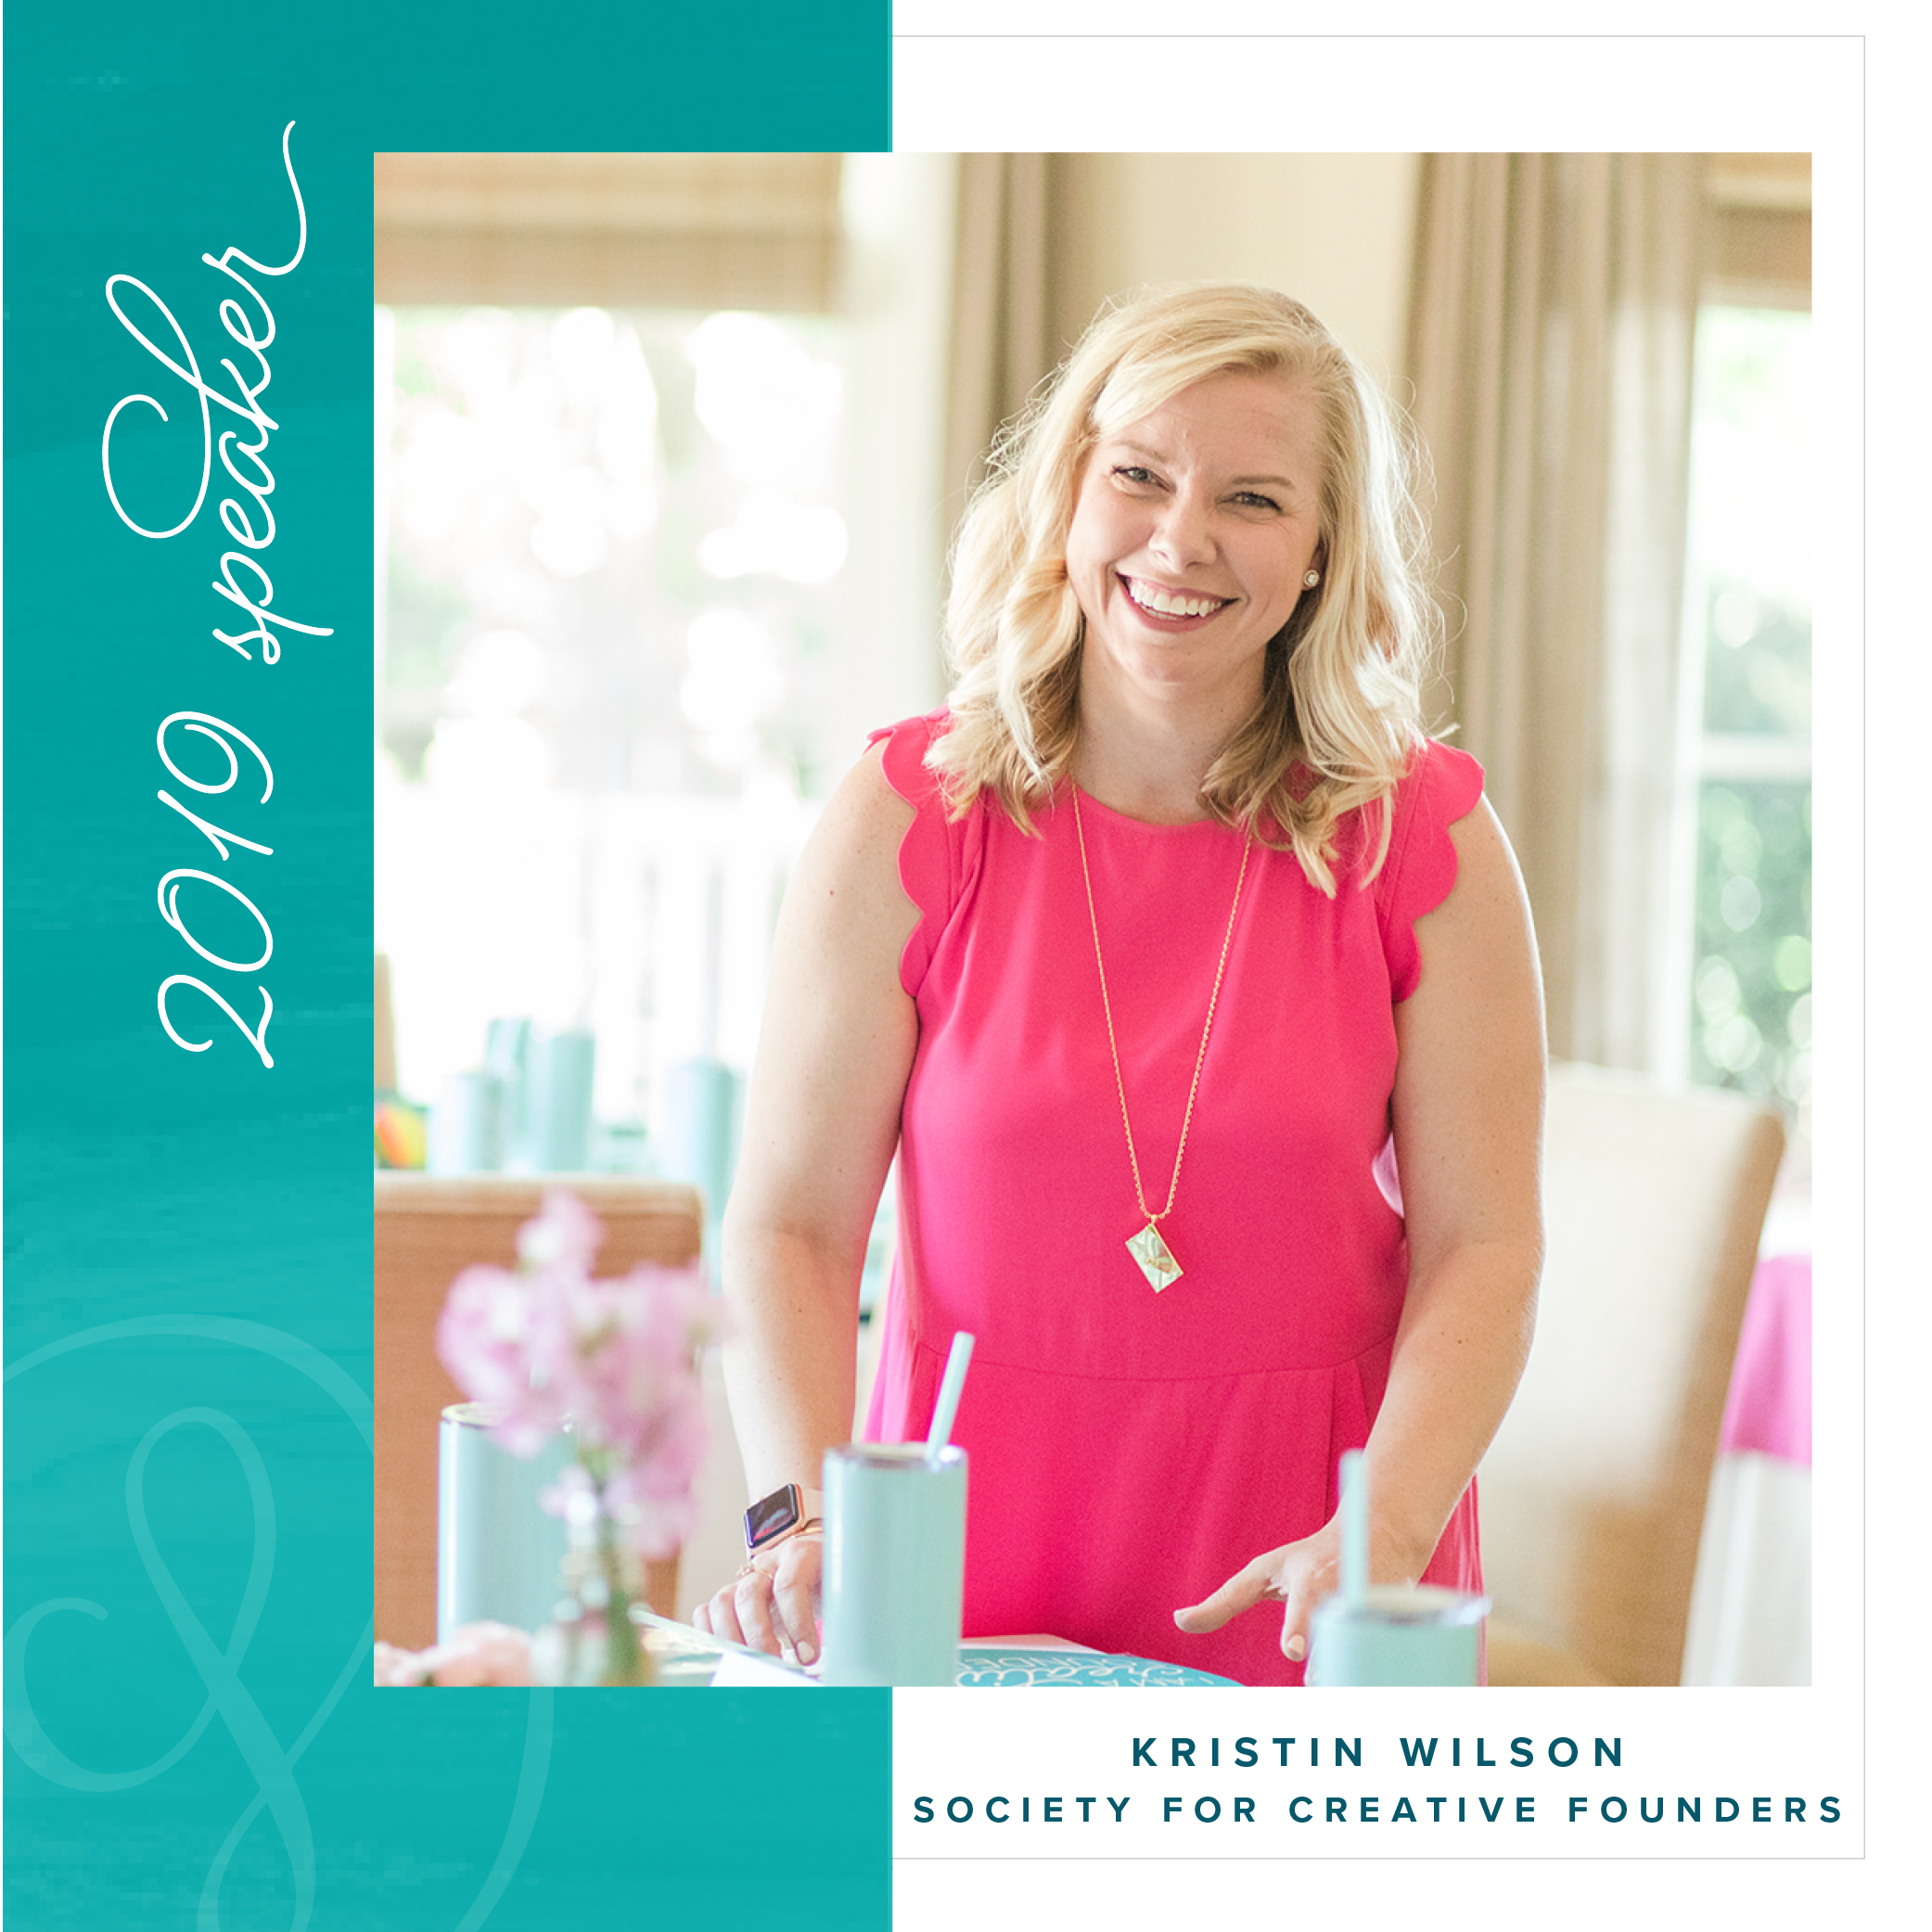 Kristin Wilson of the Society for Creative Founders - 2019 Creative Founders Conference Speaker